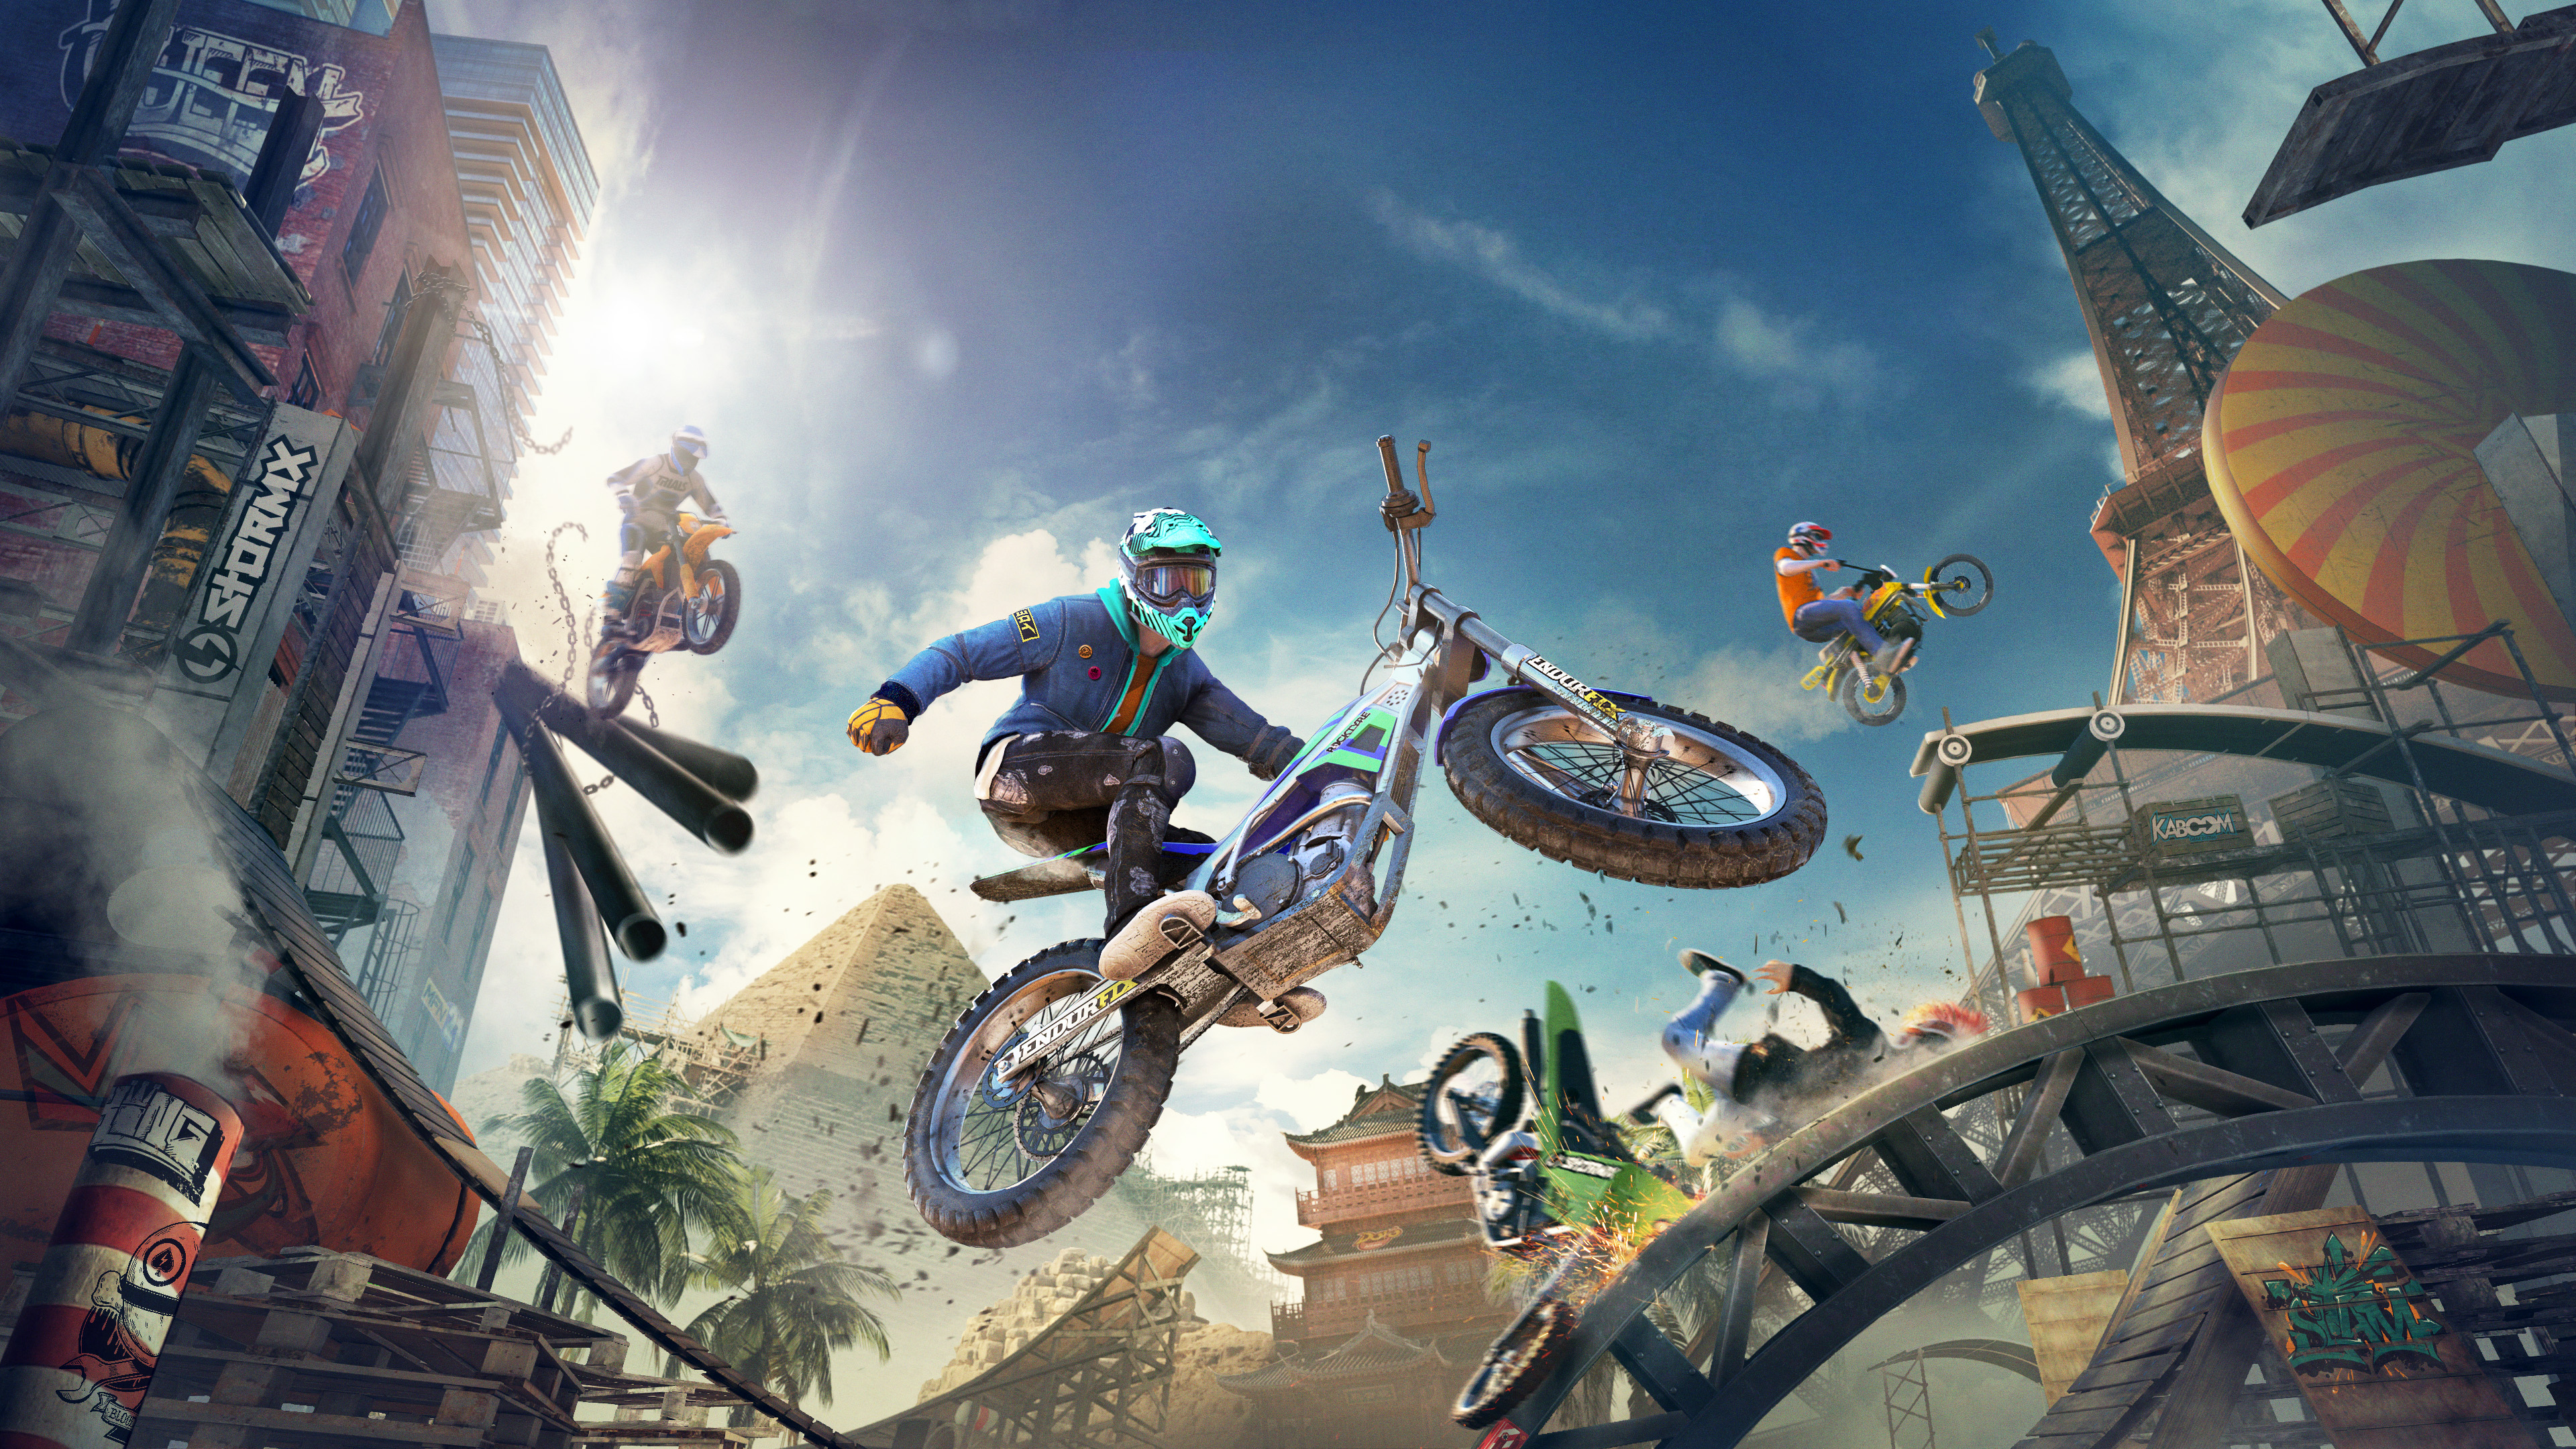 Best Gaming Wallpapers 2019 Trials Rising 2019 Game Wallpapers | HD Wallpapers